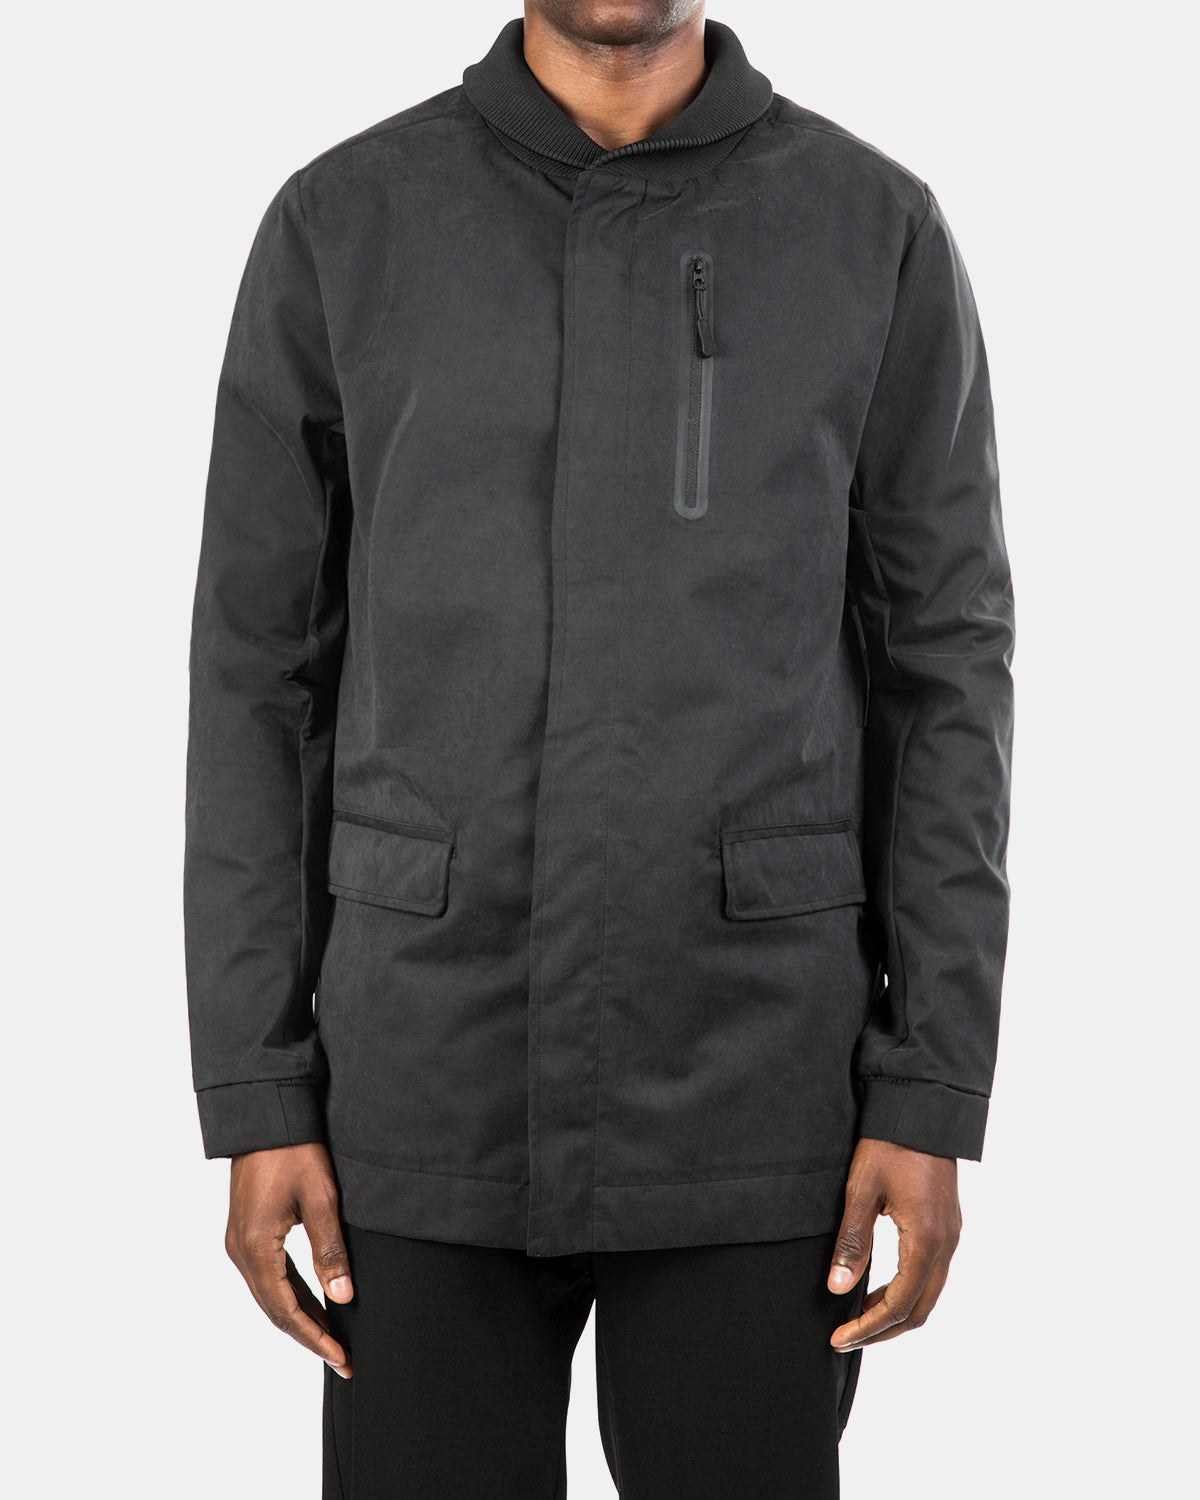 Brandblack - Simon Field Jacket (Black)